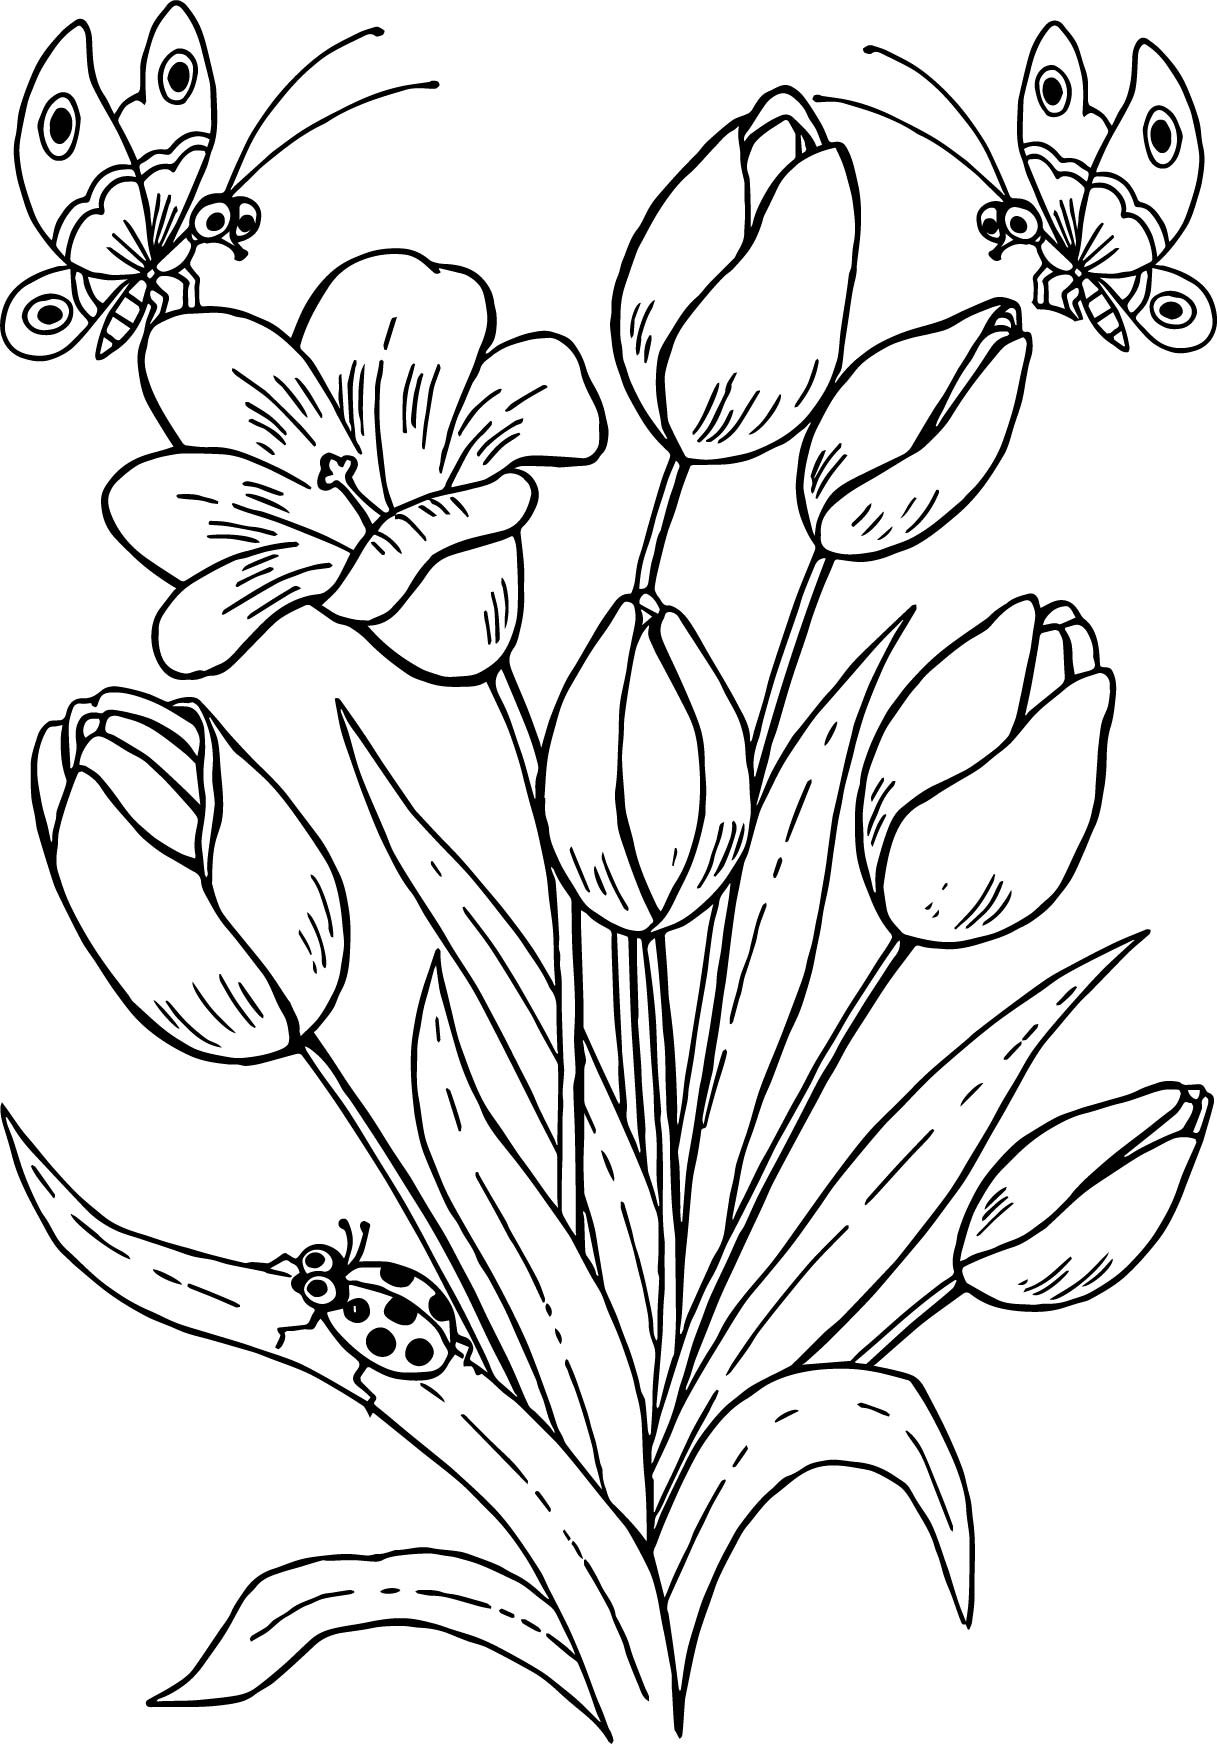 1217x1744 Tulip Coloring Pages Flower Drawing At Getdrawings Com Free